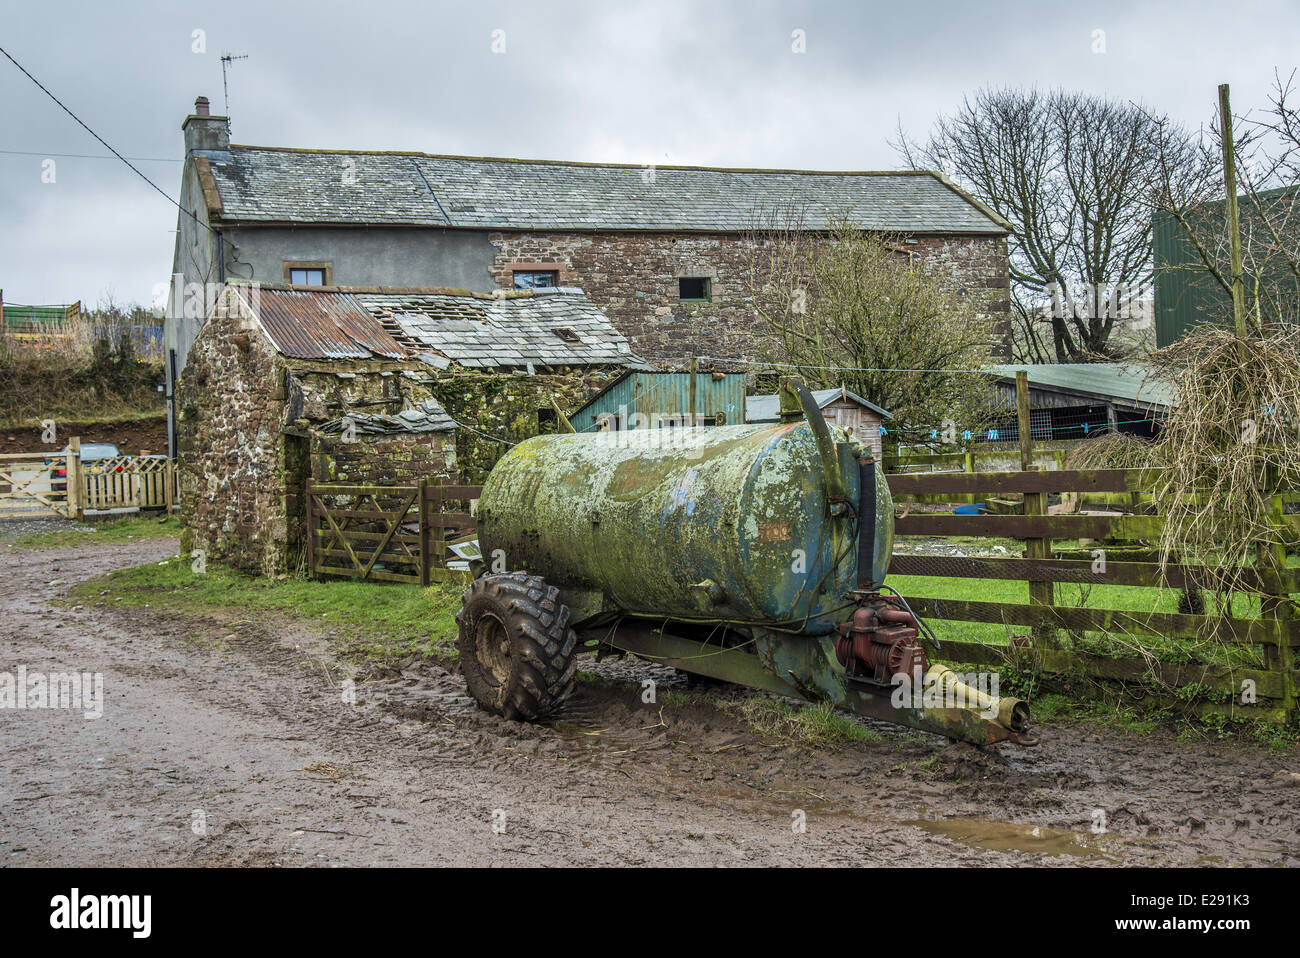 Slurry tanker and farm buildings, Cumbria, England, March - Stock Image